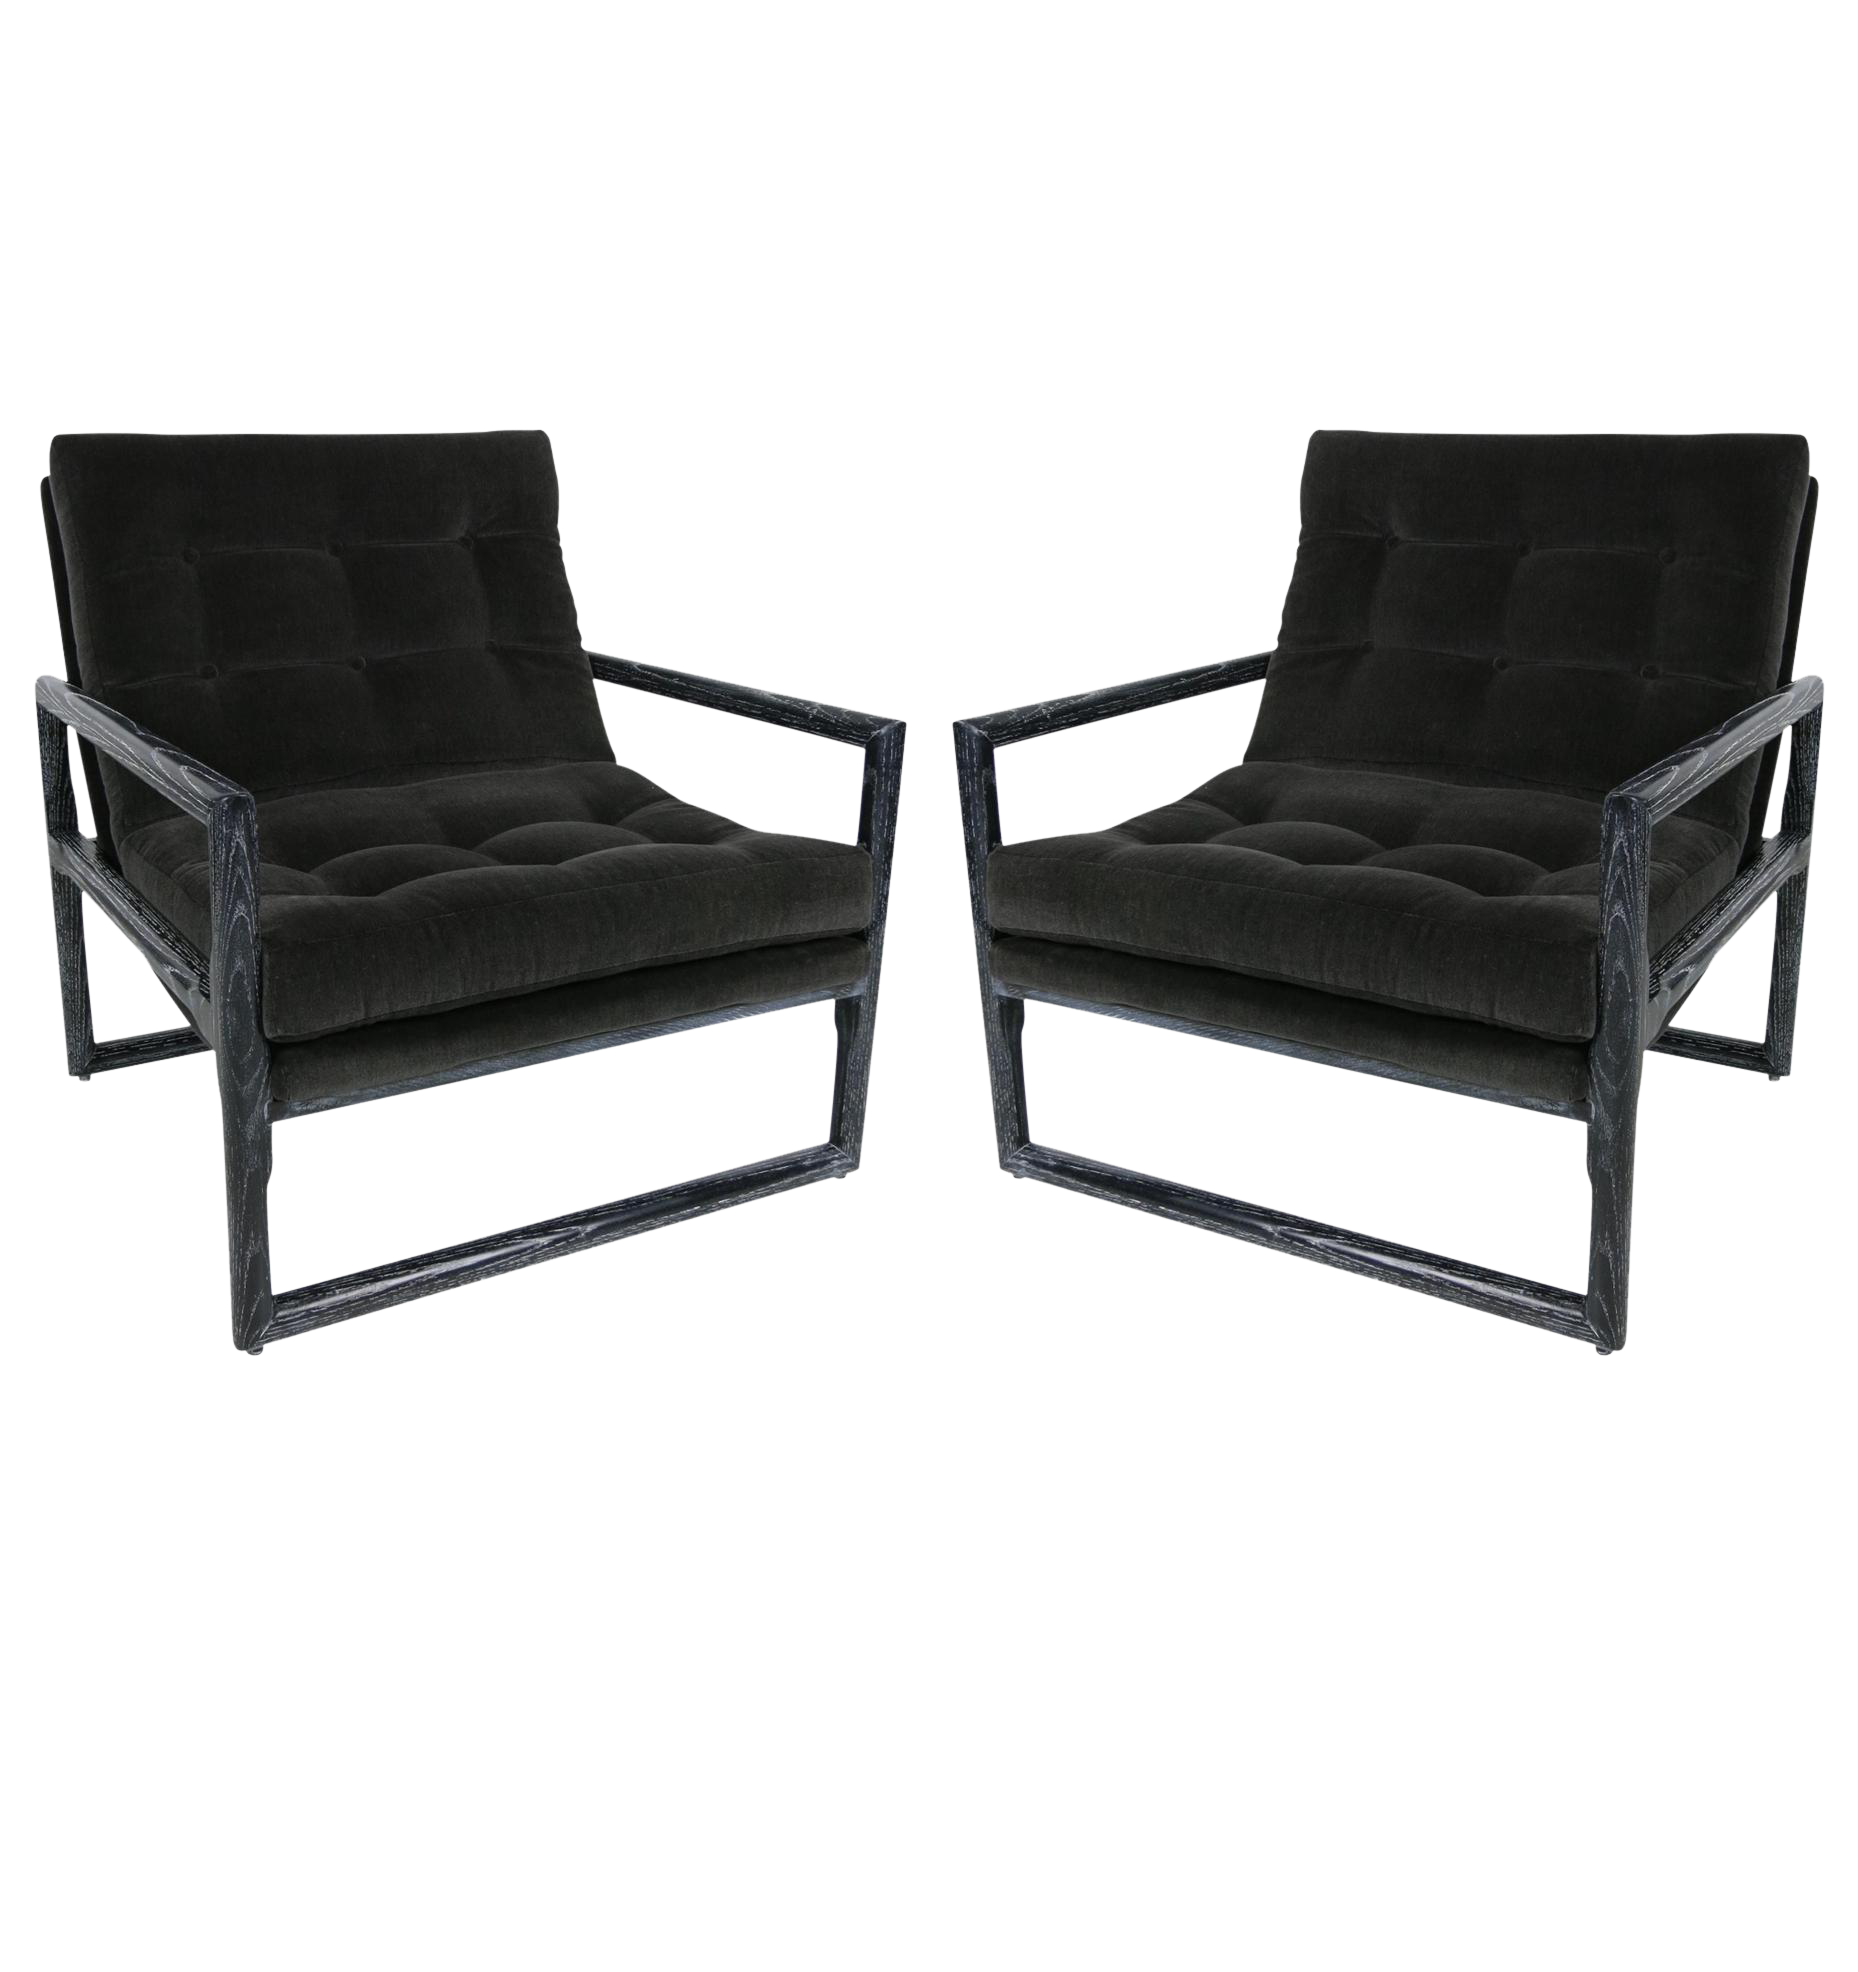 Elegant Pair Of Ebonized Cerused Oak Scoop Chairs By Milo Baughman   Image 1 Of 5